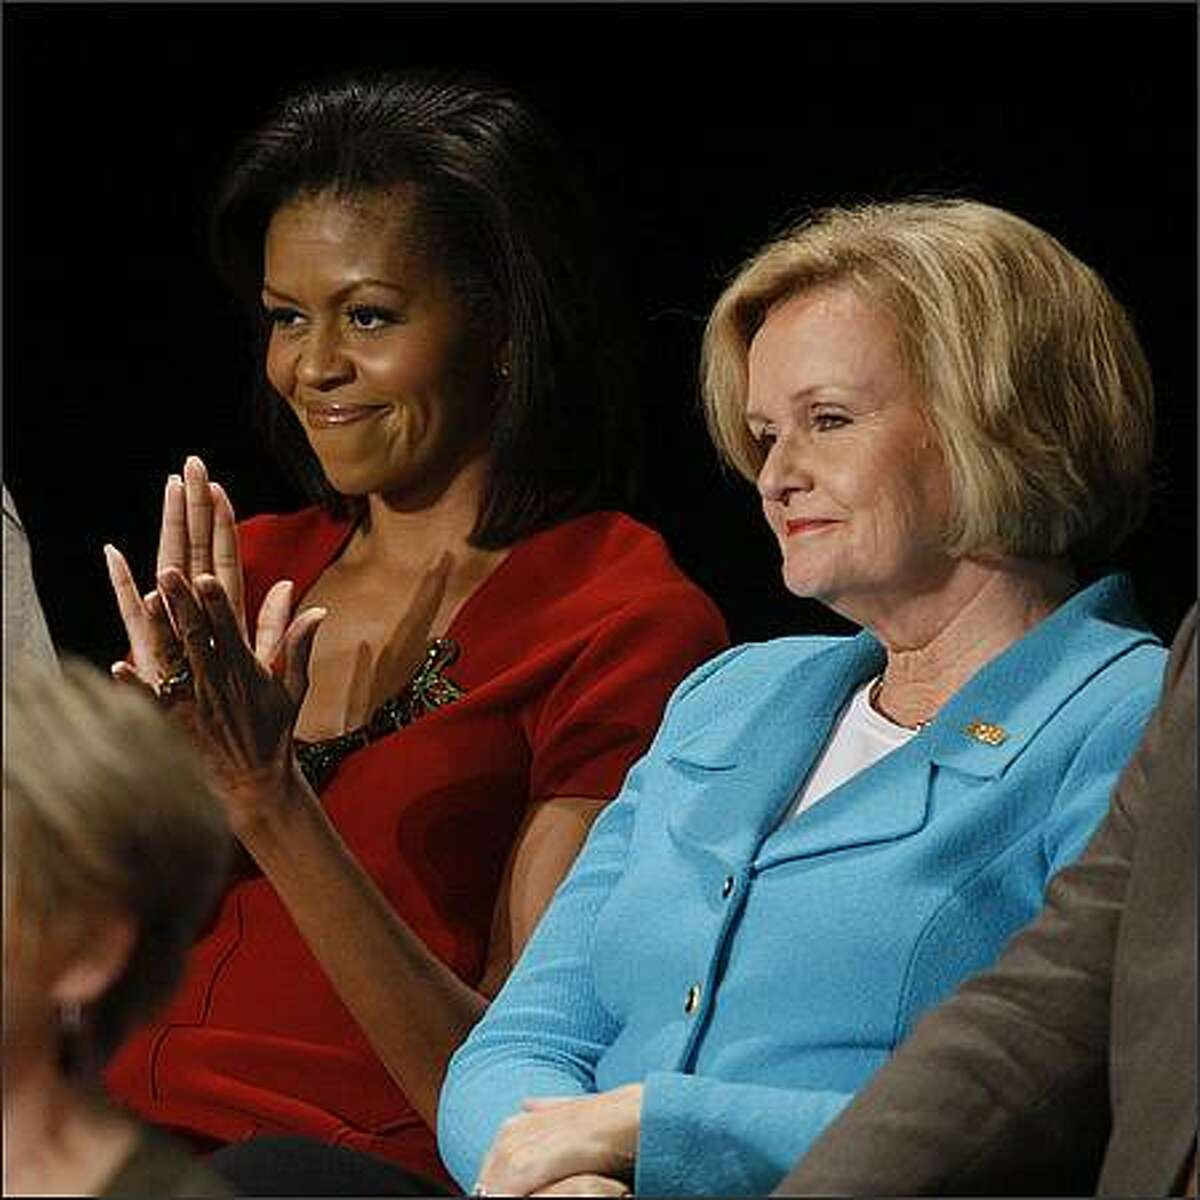 Michelle Obama, wife of Democratic presidential candidate Sen. Barack Obama, left, accompanied by Sen. Claire McCaskill , D-Mo., applauds prior to the start of a townhall-style presidential debate at Belmont University in Nashville, Tenn., Tuesday, Oct. 7, 2008. (AP Photo/Pool, Charles Dharapak)